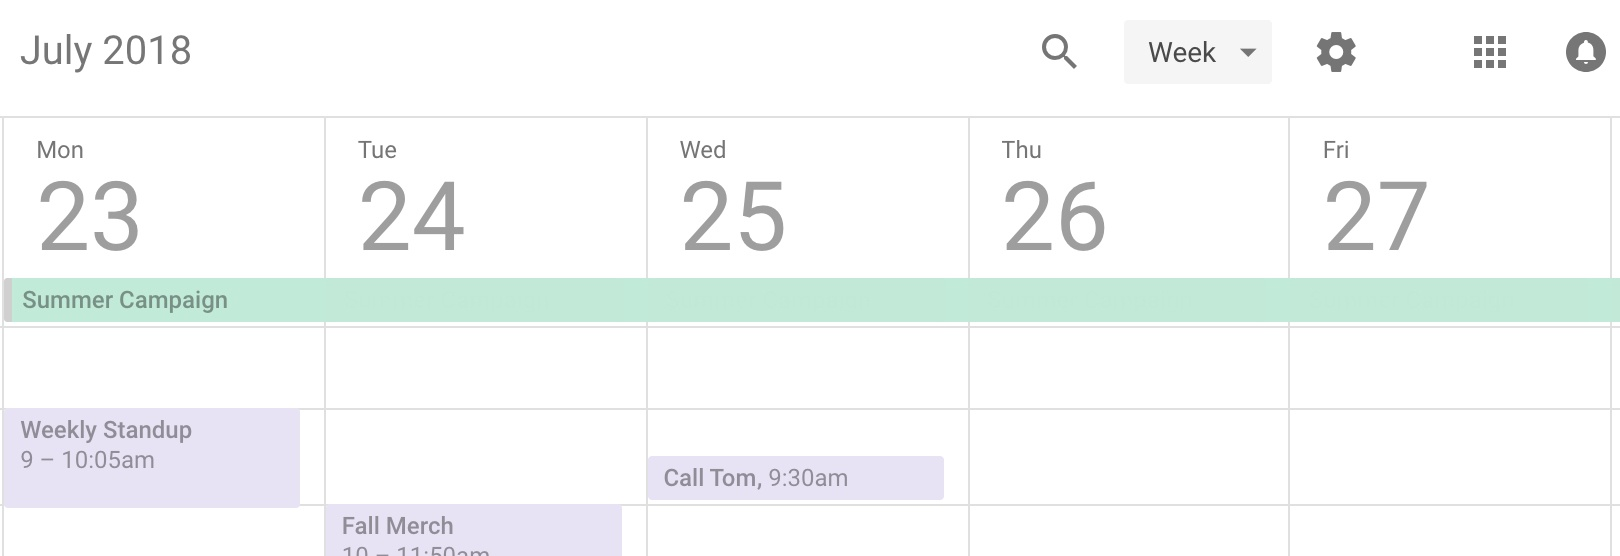 Google Calendar - Week of July 22, 2018 2018-08-09 13-14-59